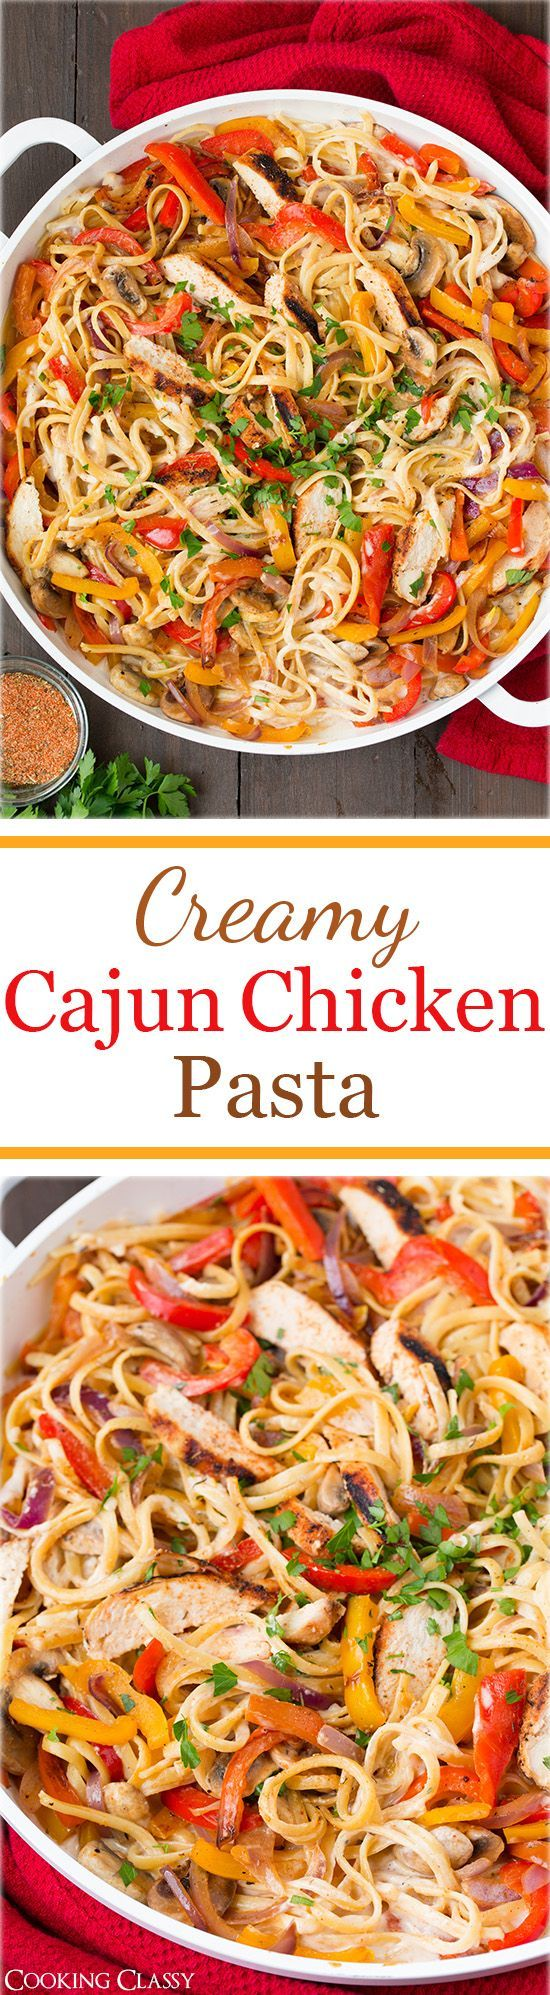 Creamy Cajun Chicken Pasta - this pasta is seriously AMAZING! Linguine covered in a lighter alfredo style sauce with cajun seasoning, and grilled chicken, sauteed peppers, mushrooms and onions. I'll make this again and again! #pastafoodrecipes